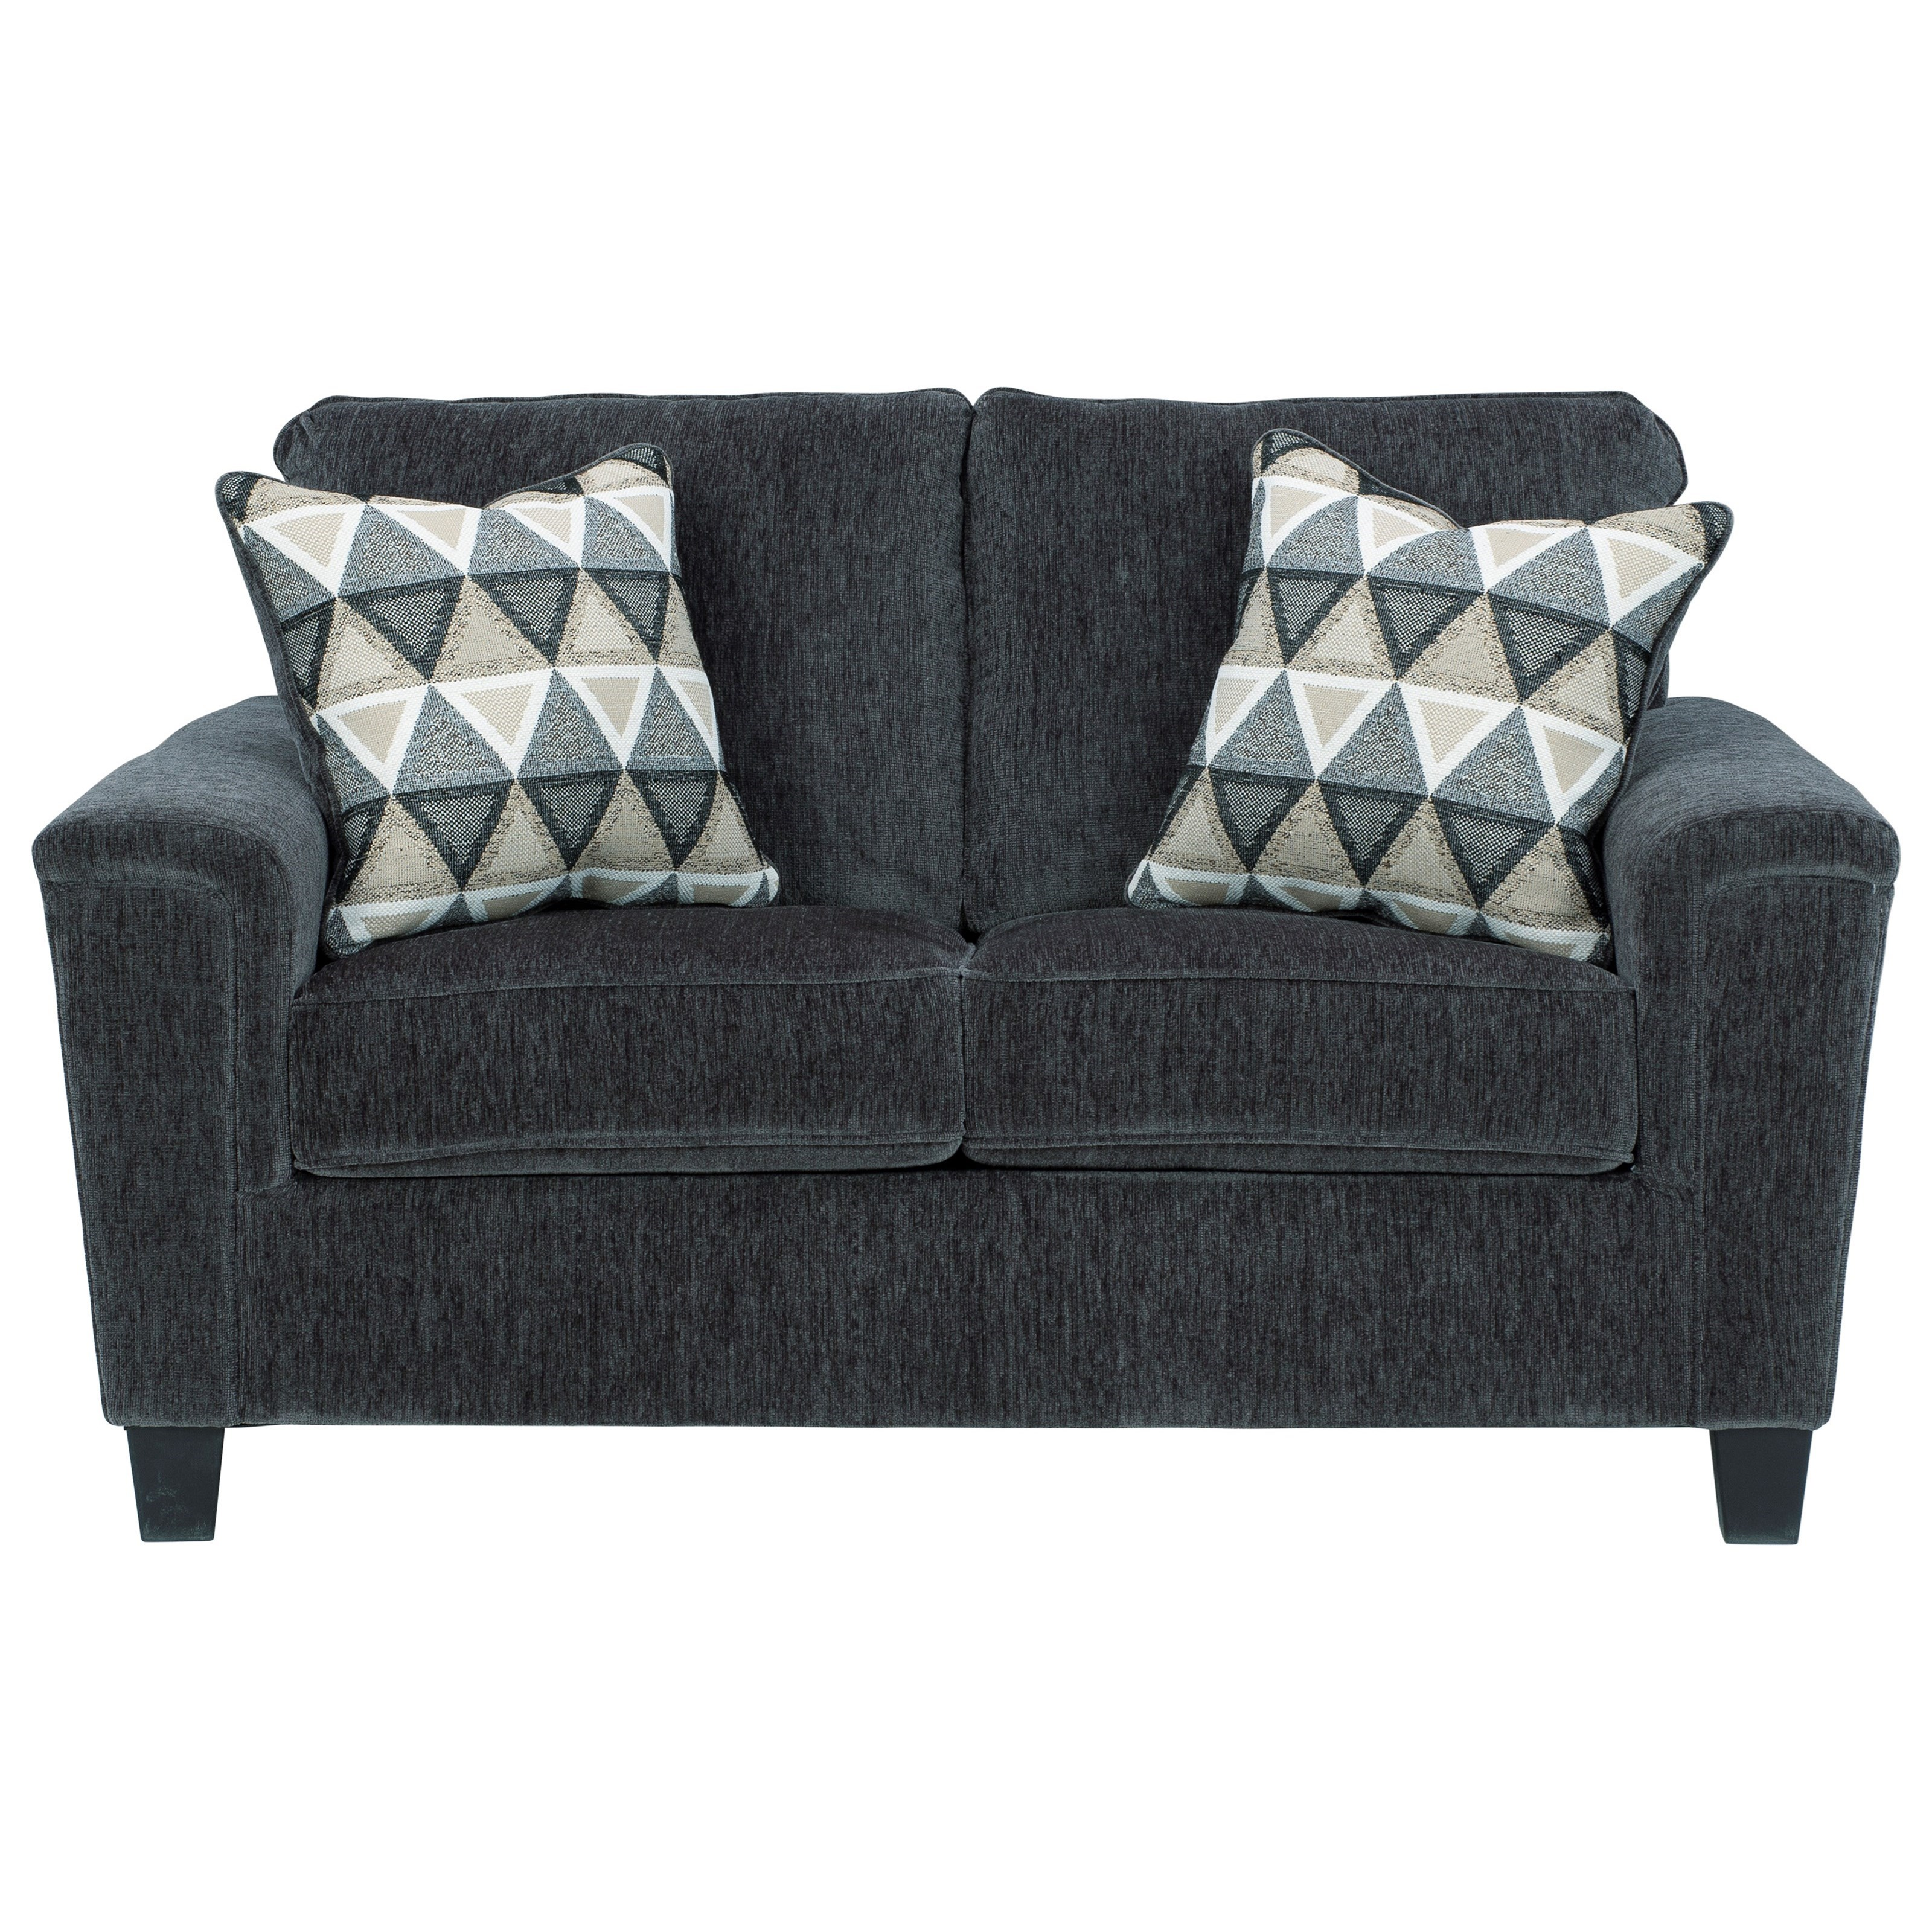 Abinger Loveseat by Signature Design by Ashley at Furniture Fair - North Carolina